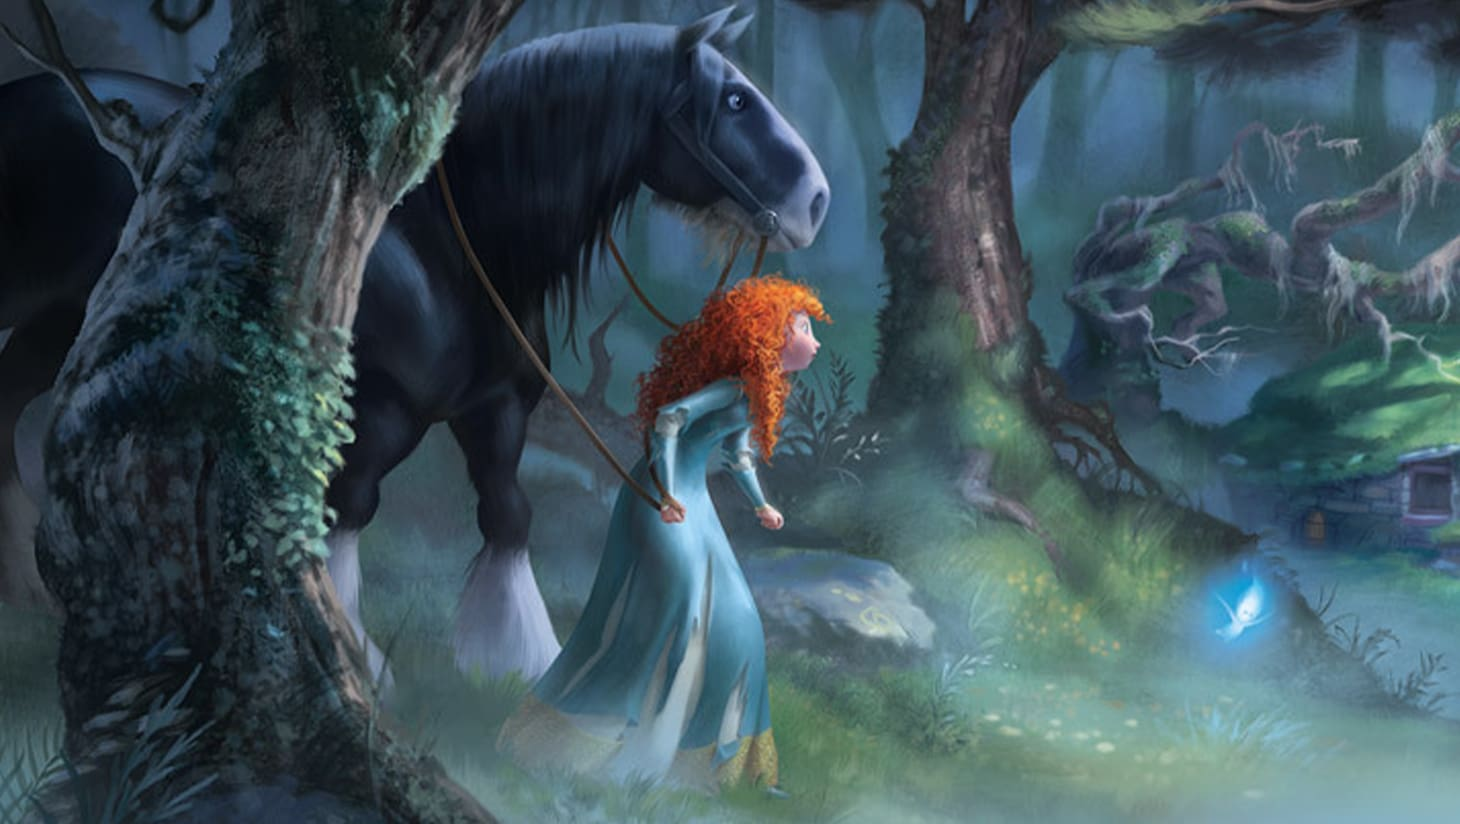 Merida and Angus explore the forest